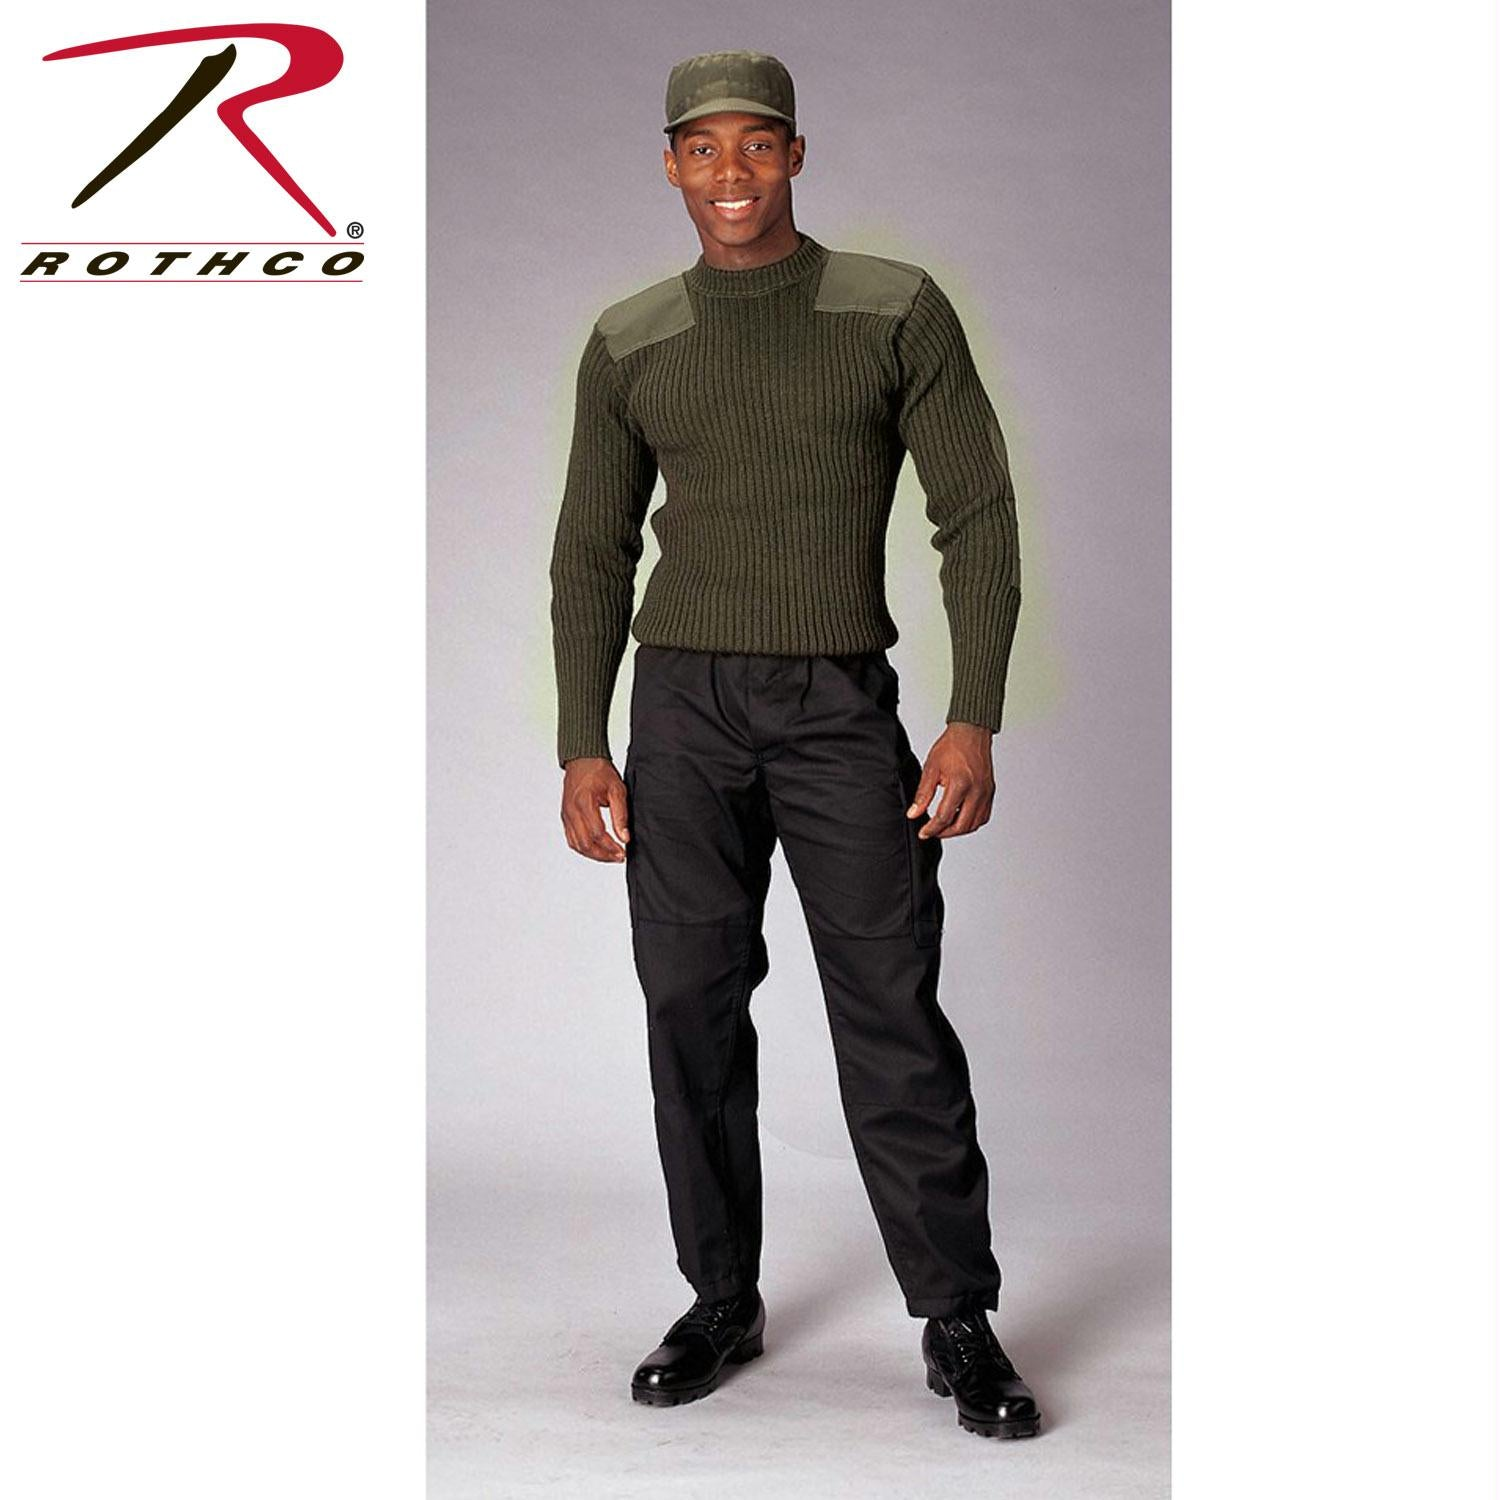 Rothco Government Type Wool Commando Sweater - 38 / Olive Drab